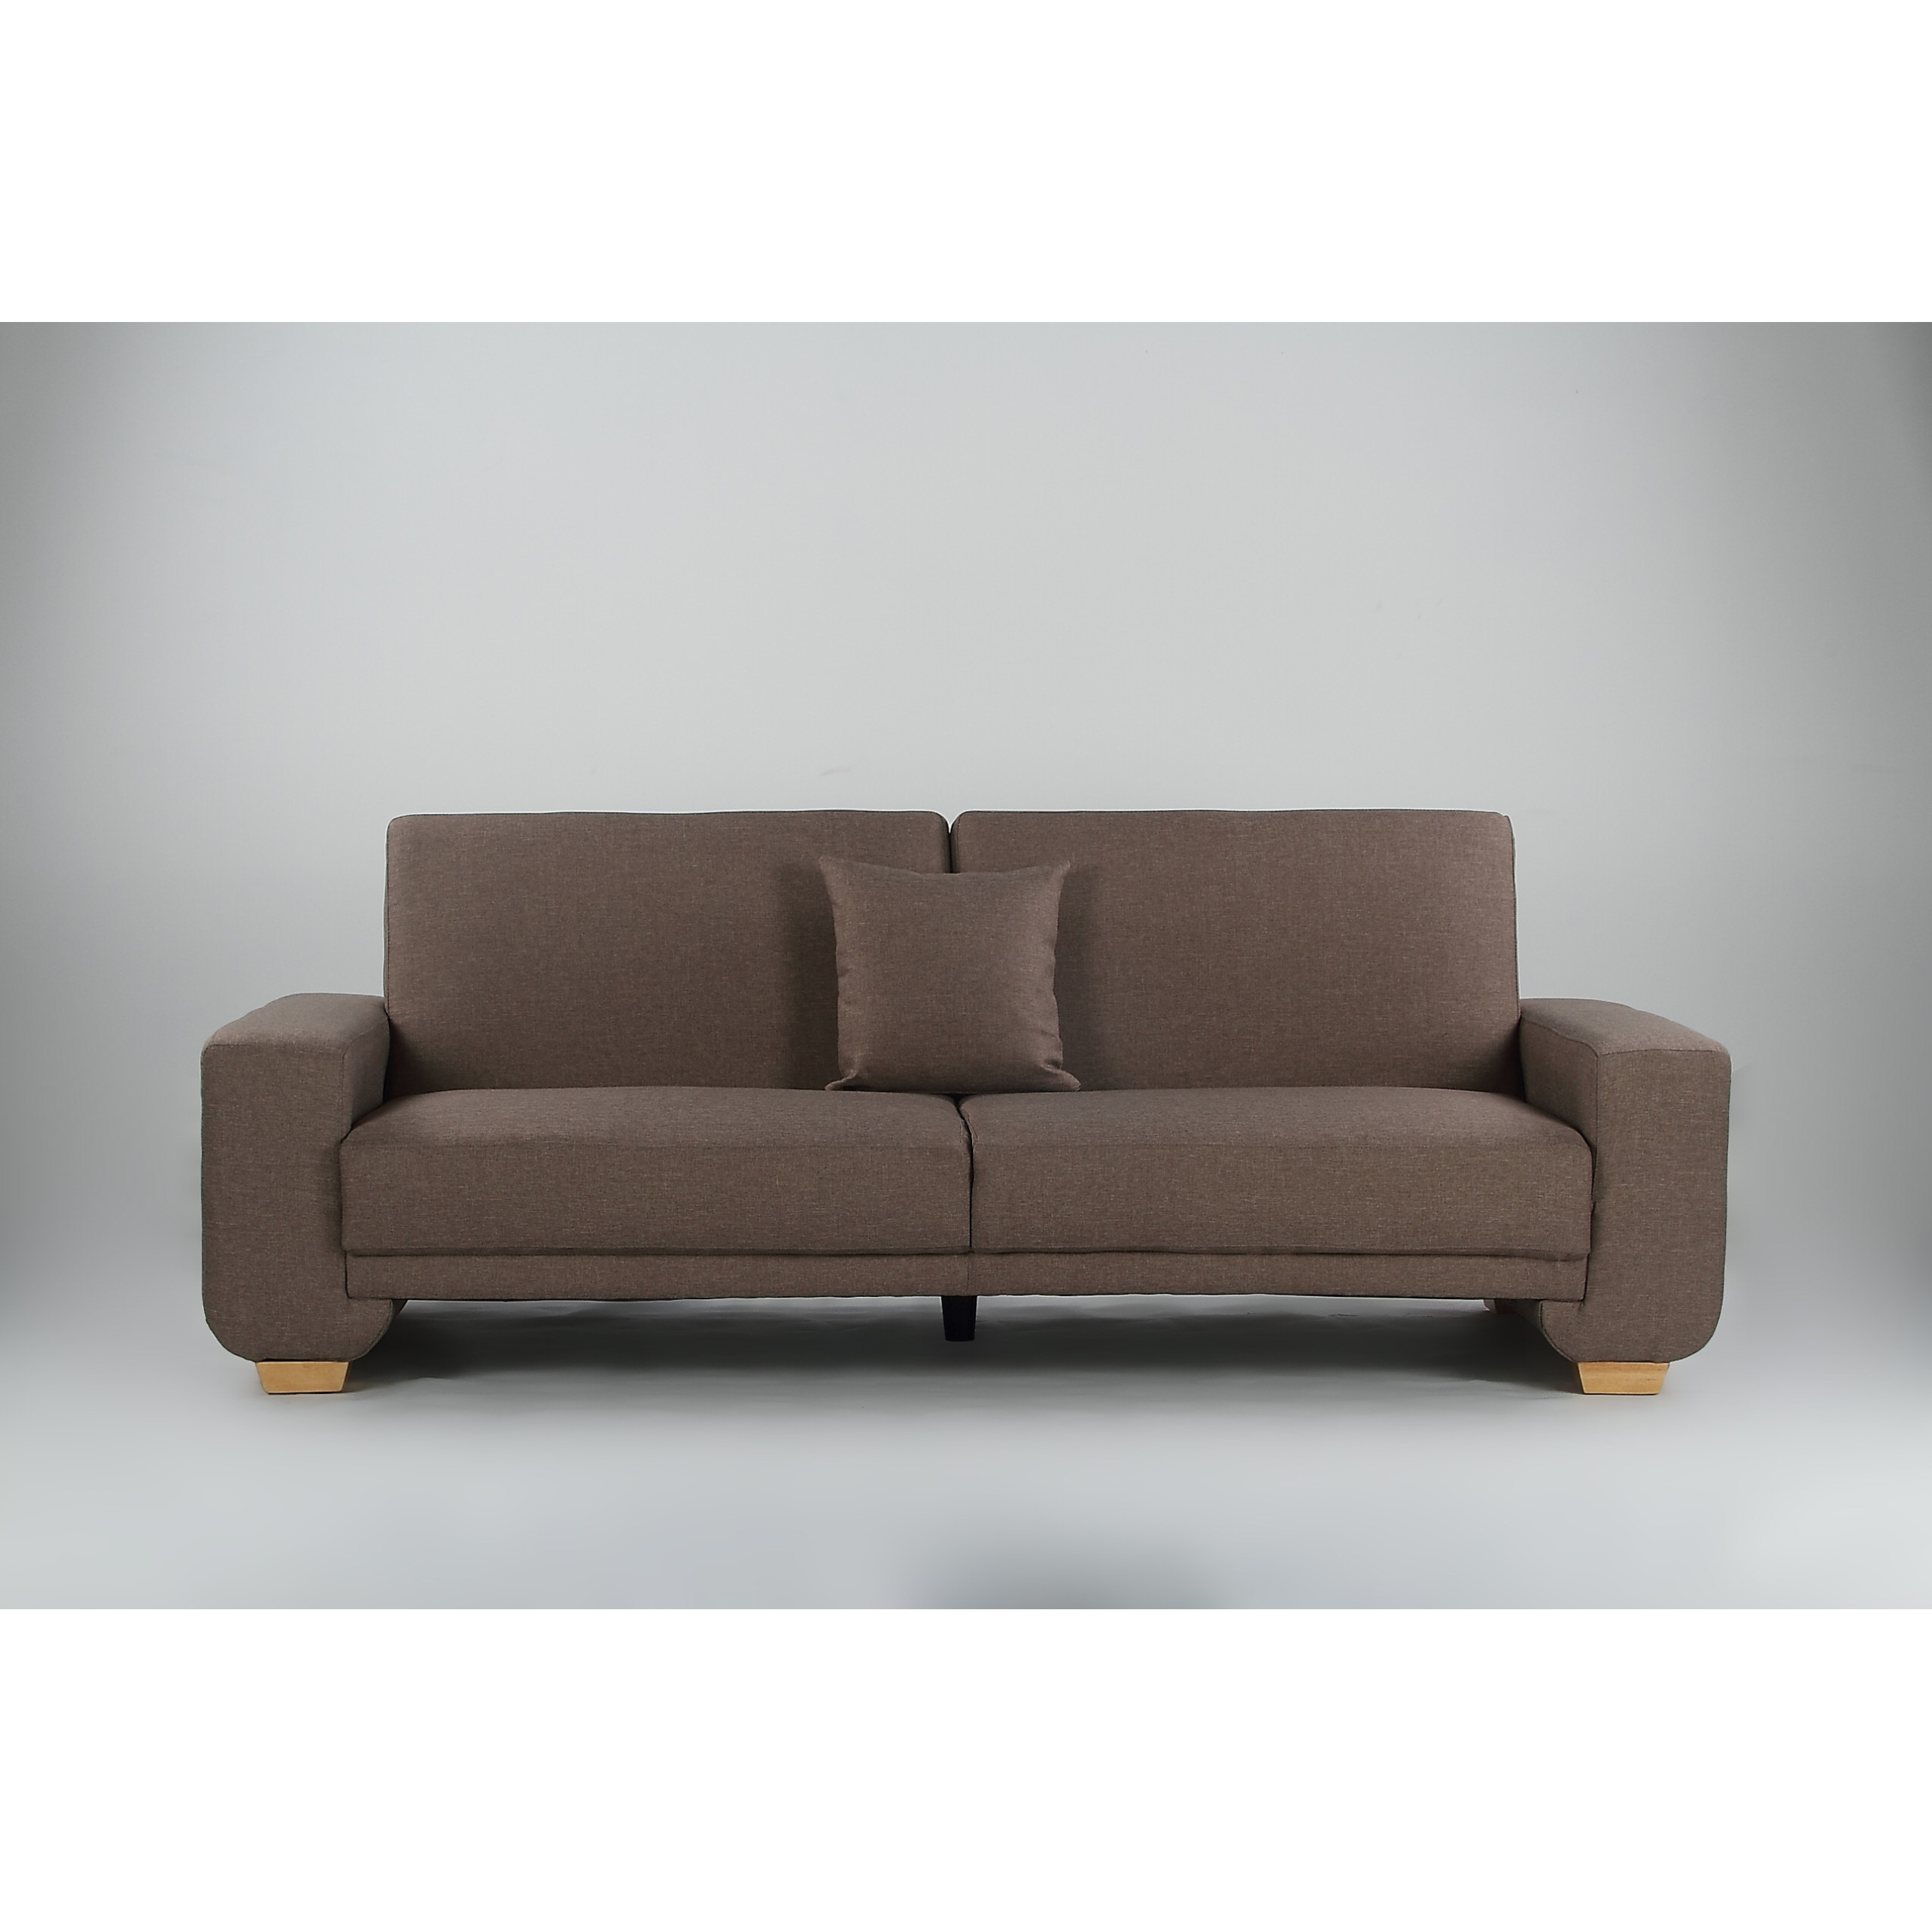 Cozy 3 seater brown sofa bed furniture home d cor for Sofa bed 4 6